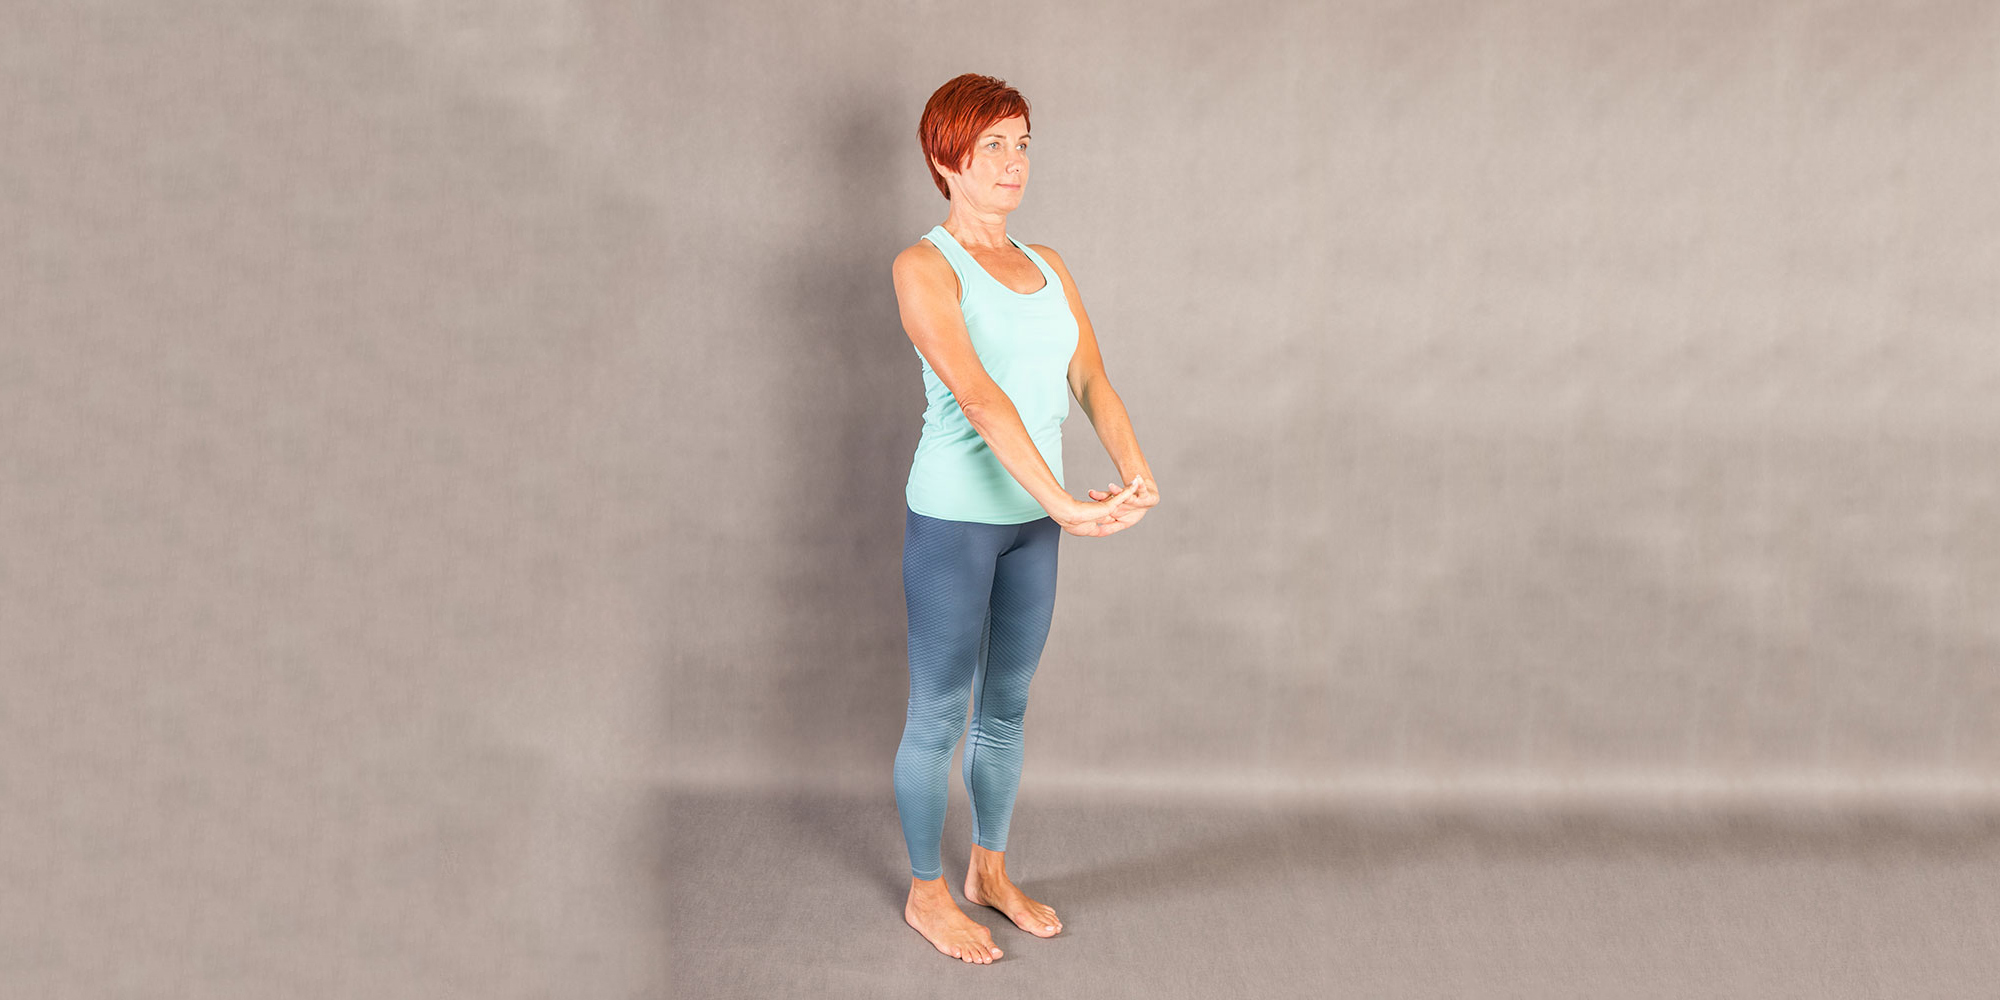 Standing_Overhead, Fit Pain Free